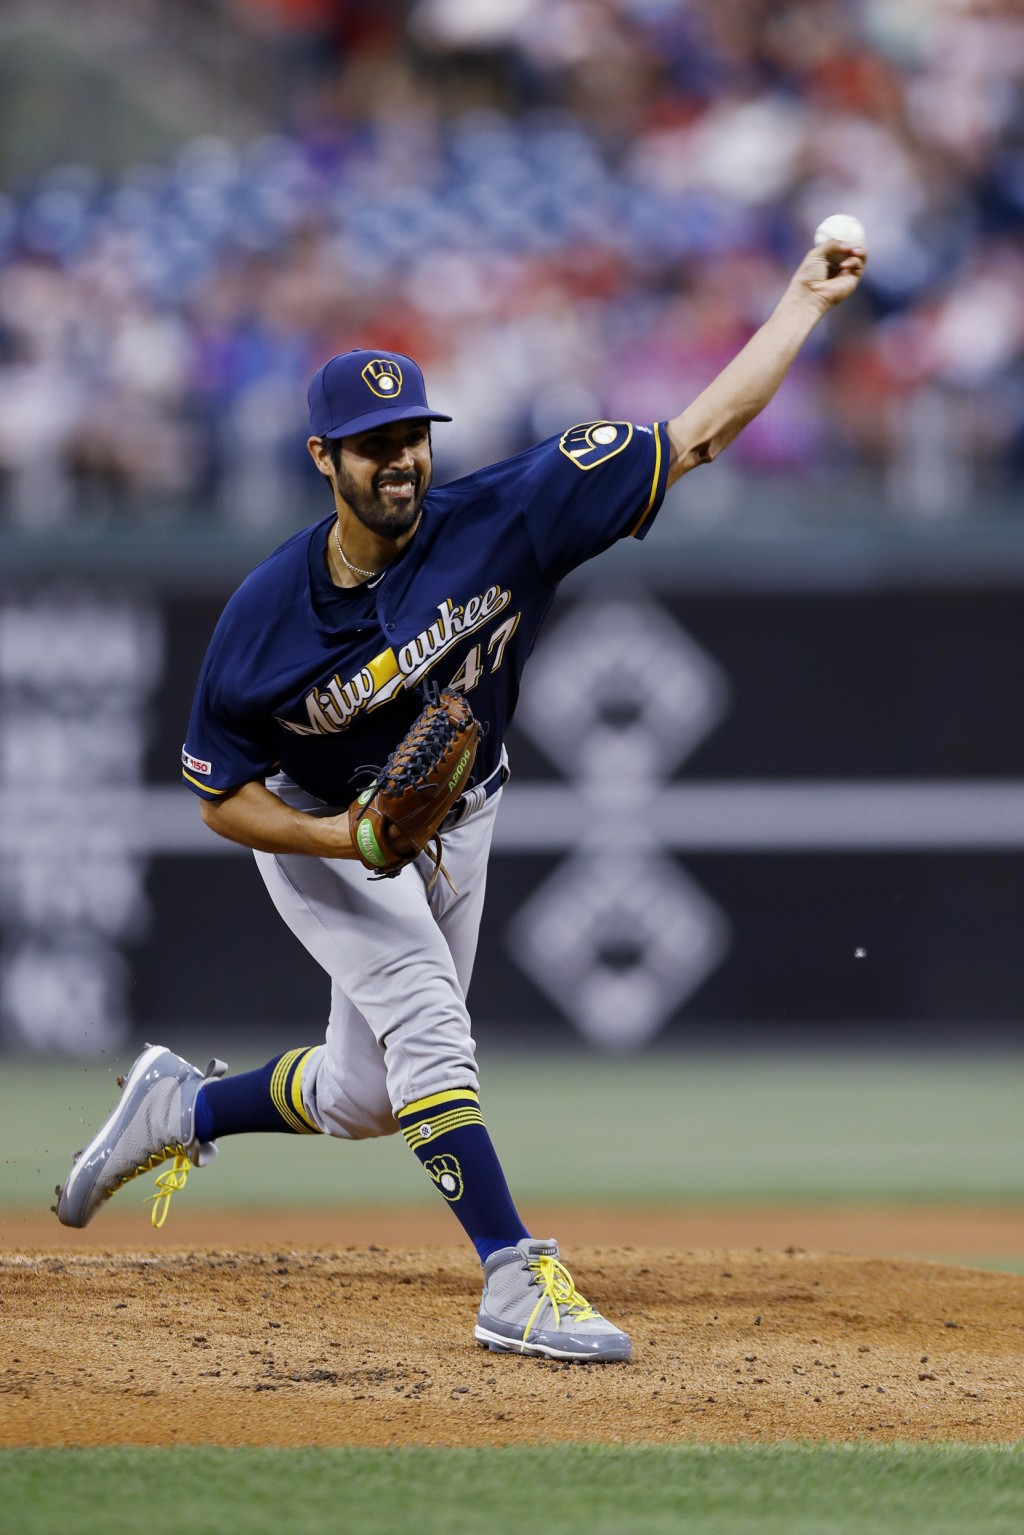 Milwaukee Brewers' Gio Gonzalez pitches during the first inning of the team's baseball game against the Philadelphia Phillies, Wednesday, May 15, 2019